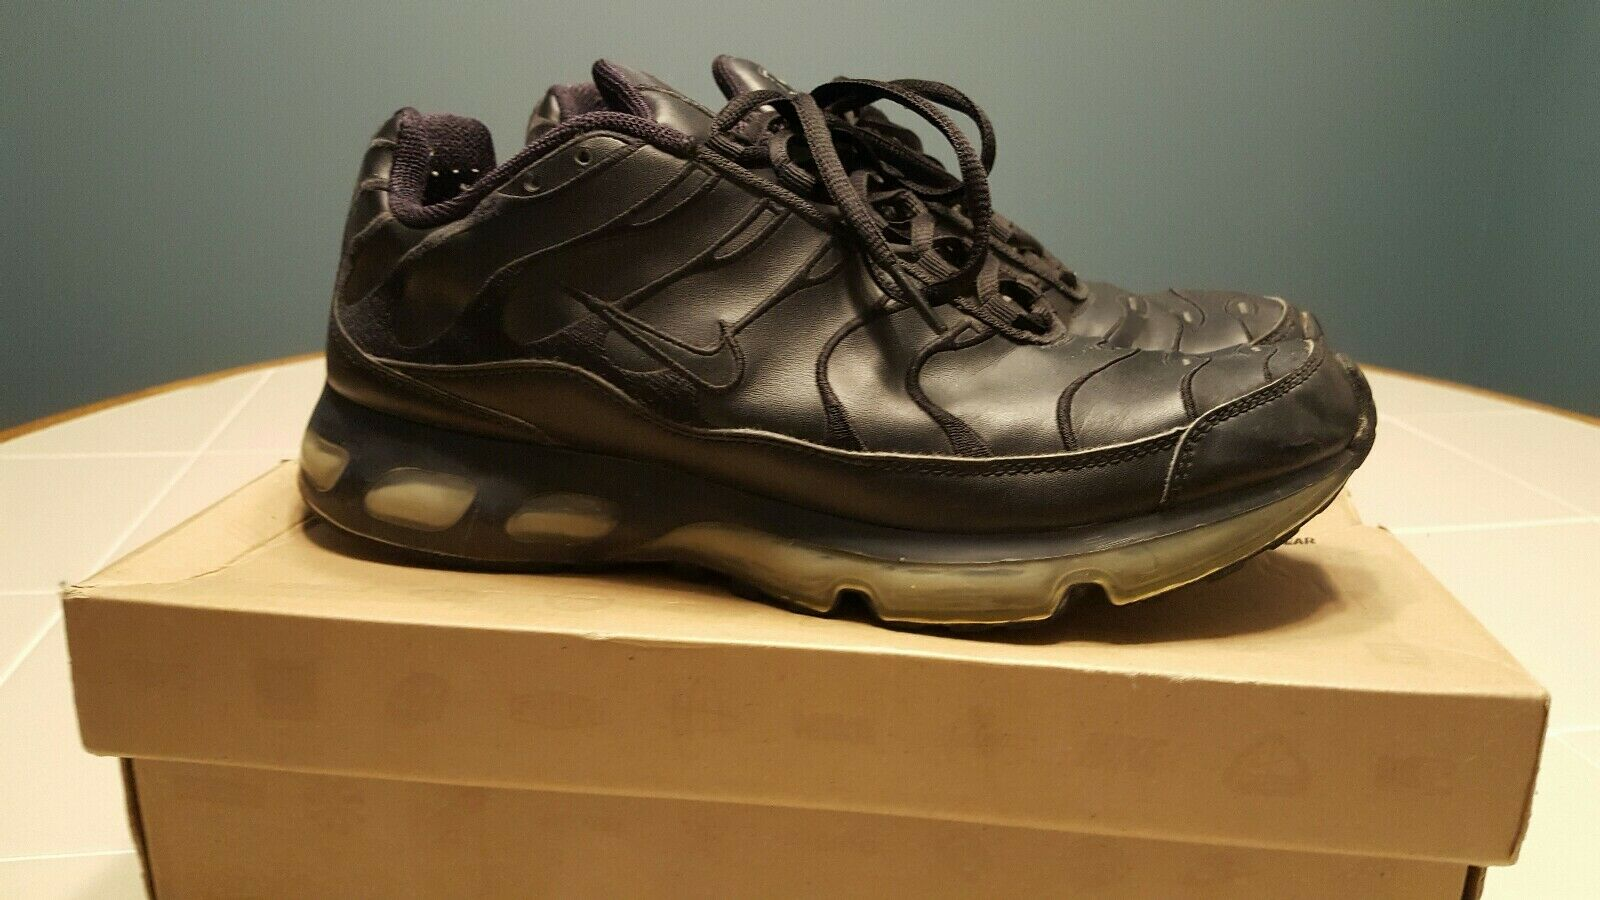 RARE AUTHENTIC NIKE AIR MAX TN 360 TUNED PLUS SIZE 9.5 TRIPLE BLACK LEATHER